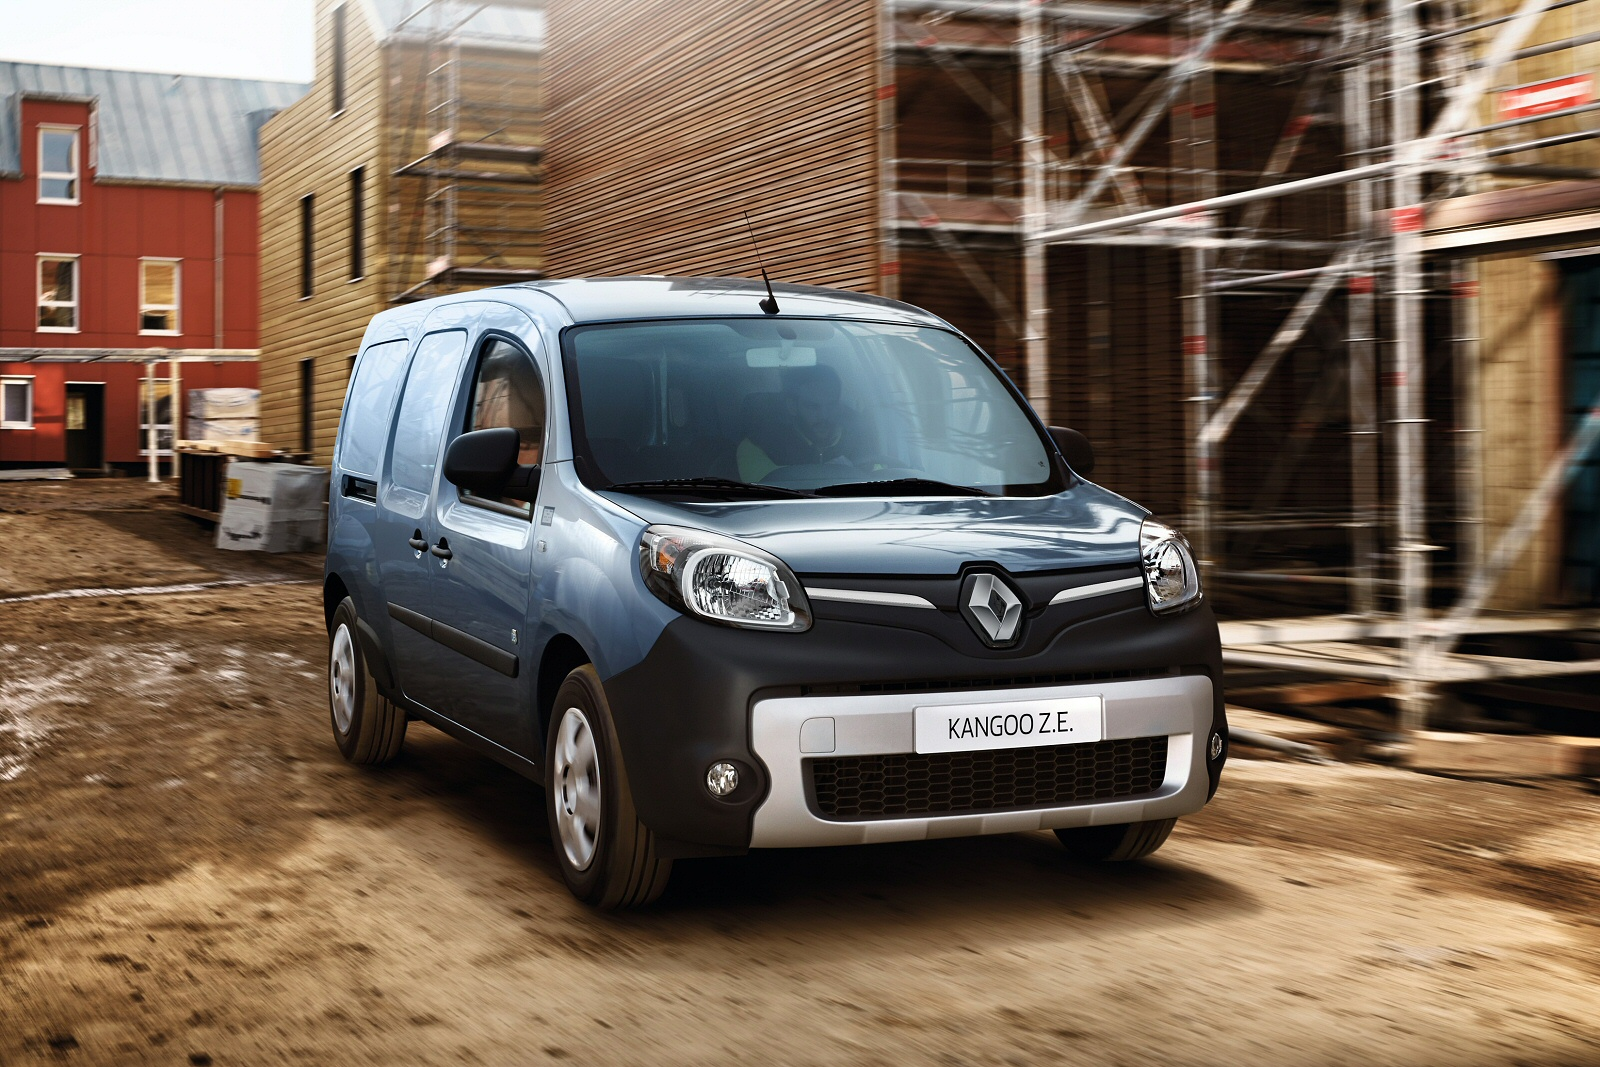 new renault kangoo ze electric ml20 44kw 33kwh business i van auto for sale bristol street. Black Bedroom Furniture Sets. Home Design Ideas